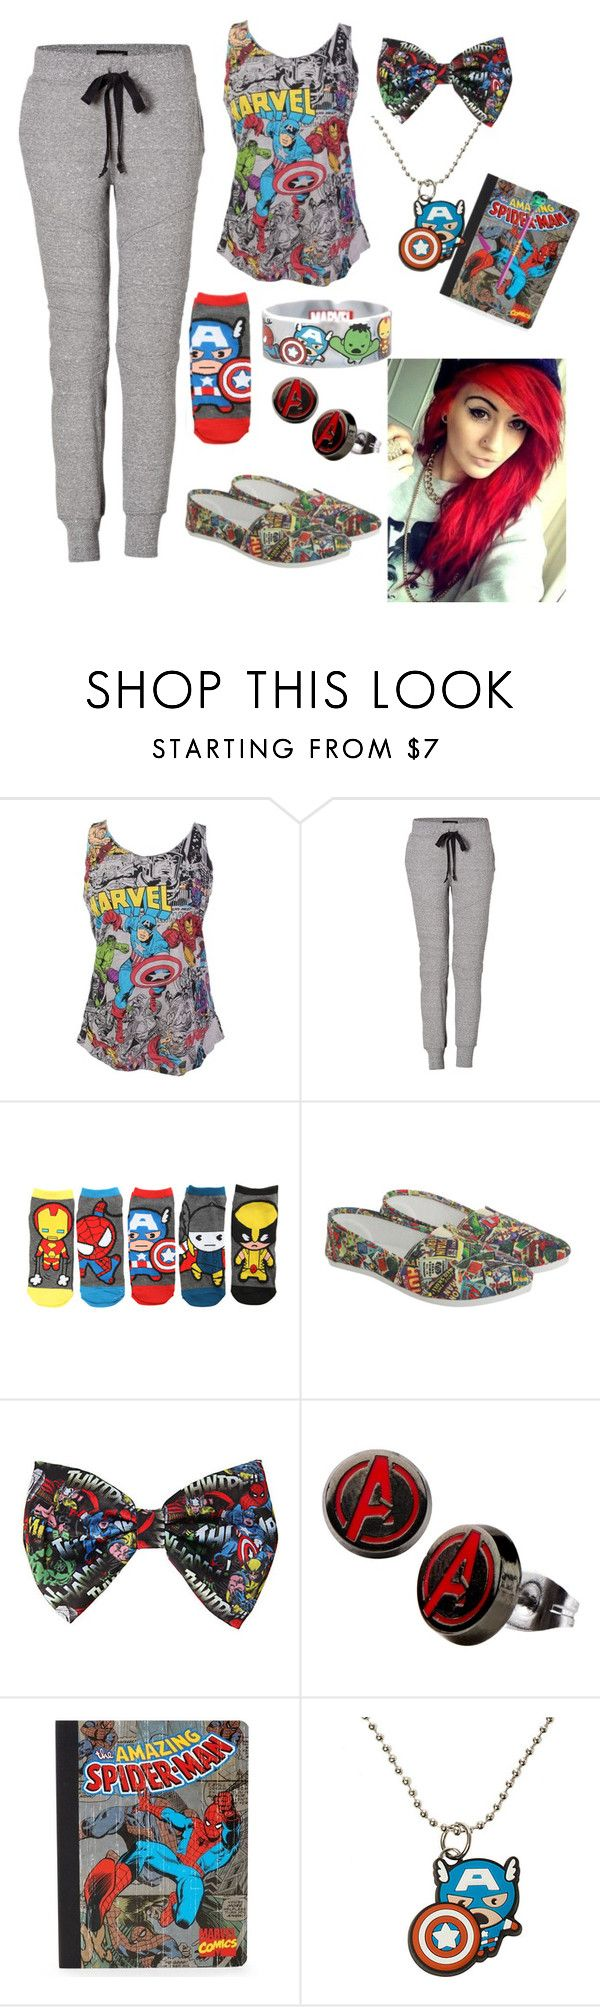 """Marvel Sleepover"" by nancyricothemusiclover ❤ liked on Polyvore featuring Current/Elliott and P.S. from Aéropostale"